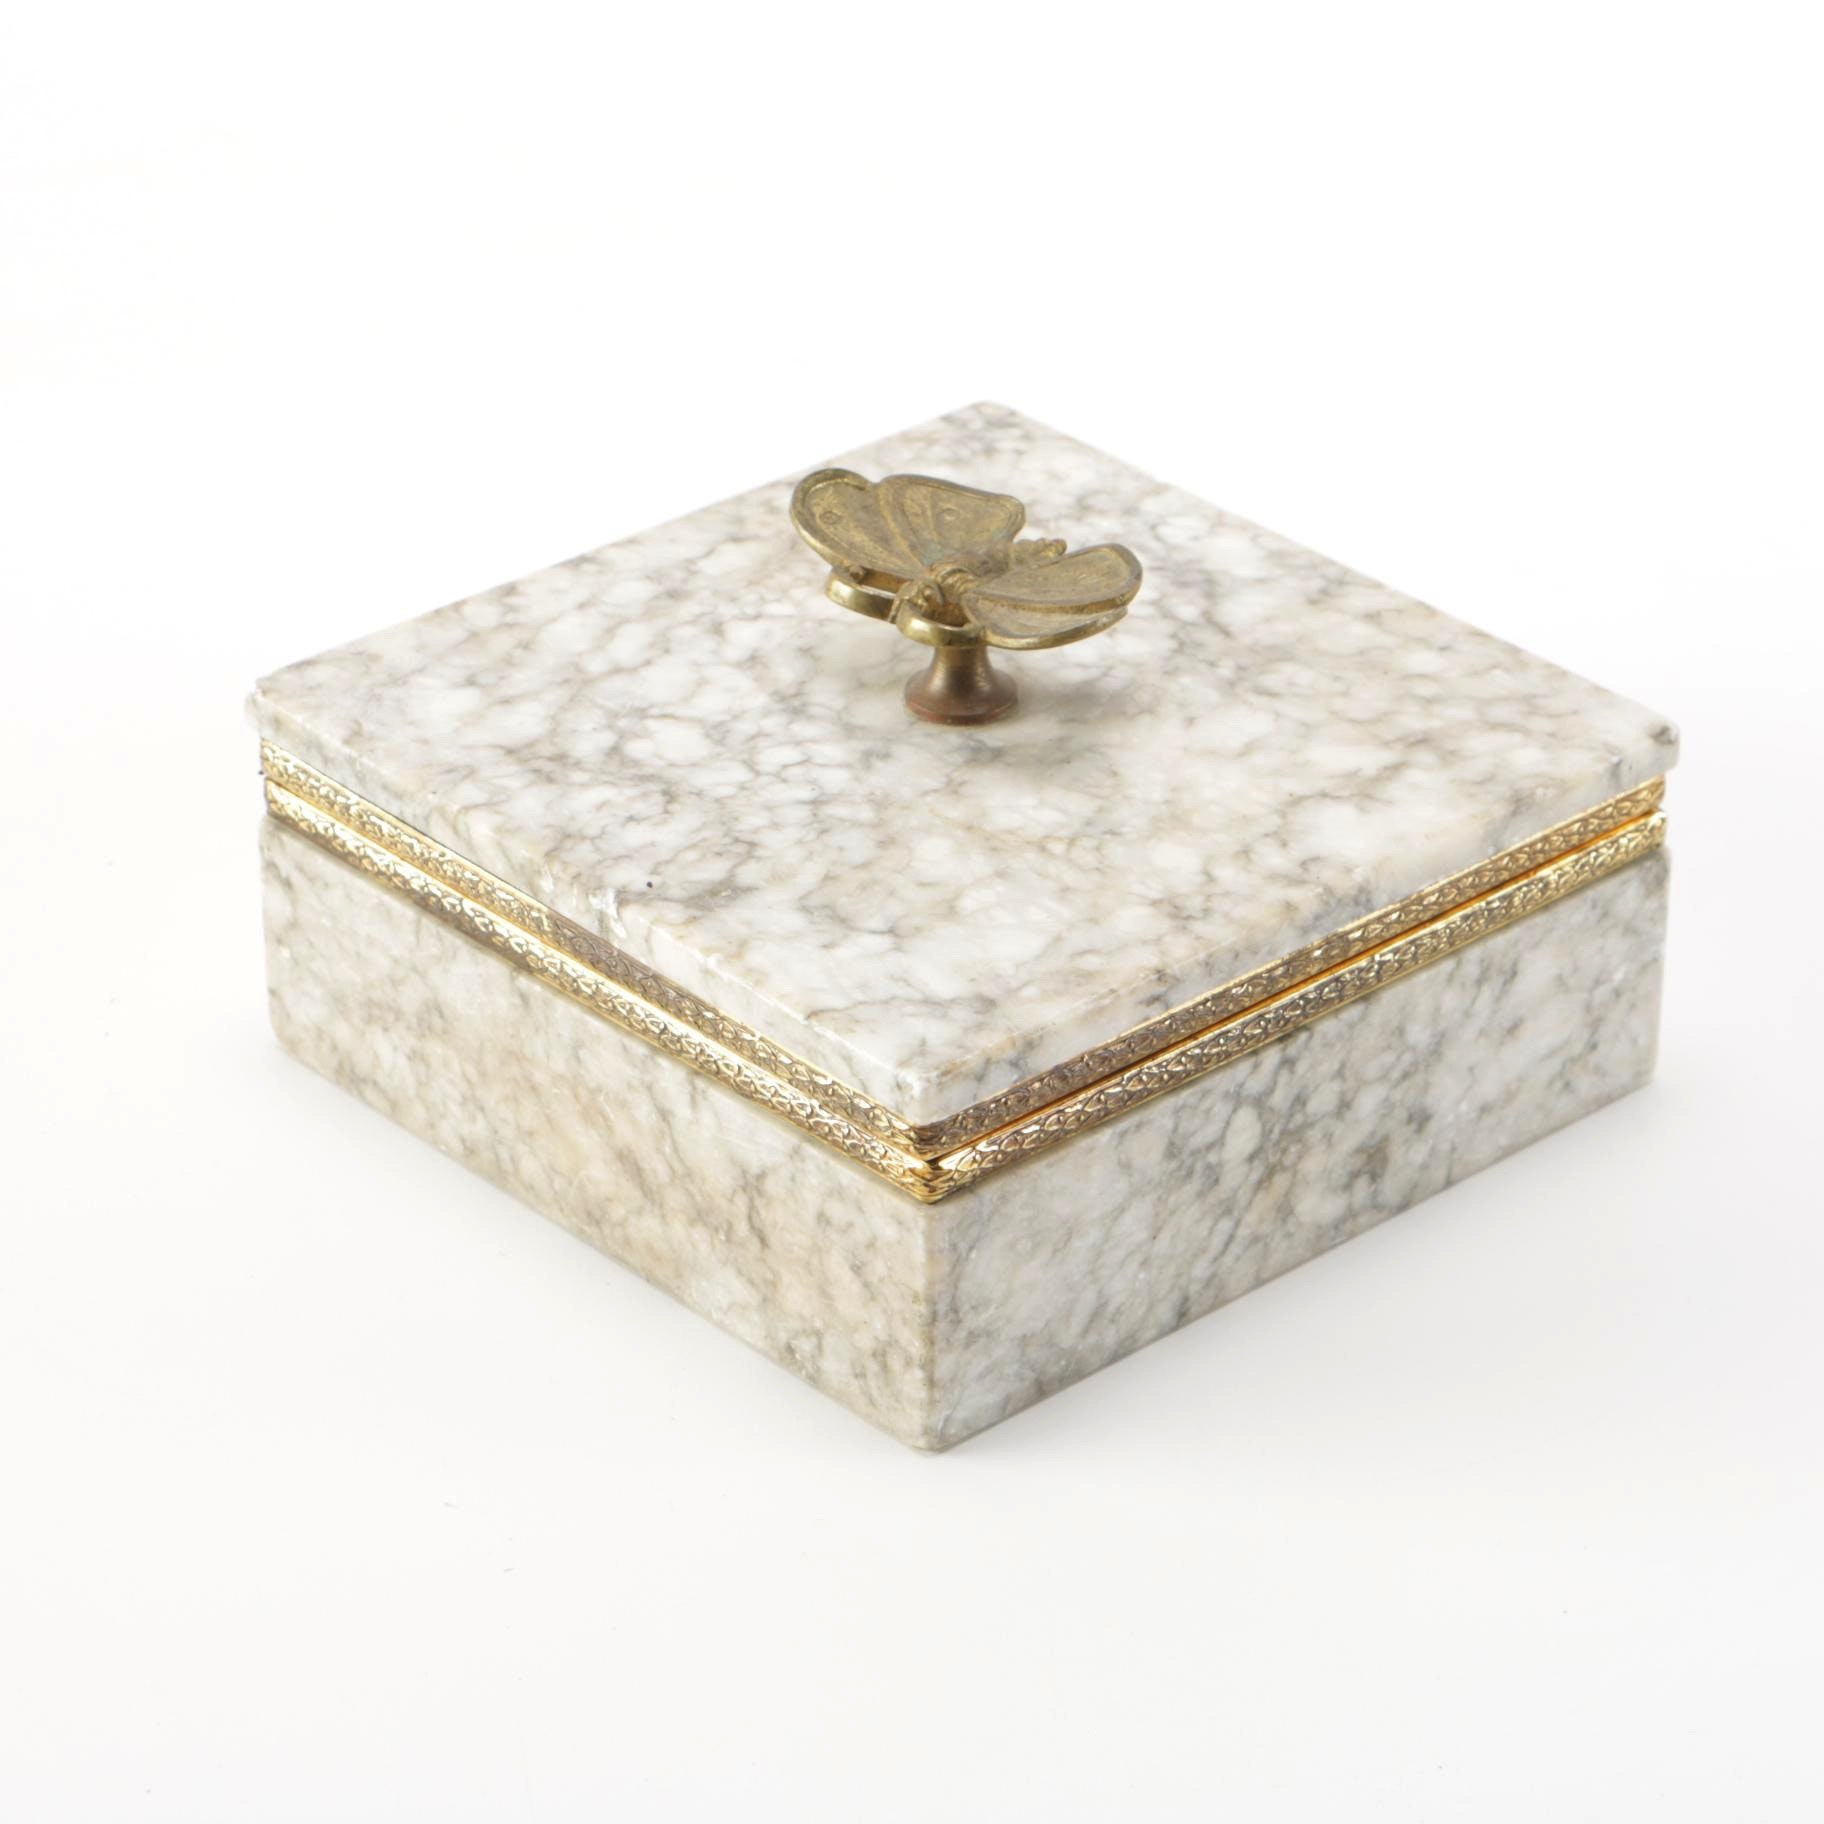 Alabaster and Brass Dragonfly Trinket Box